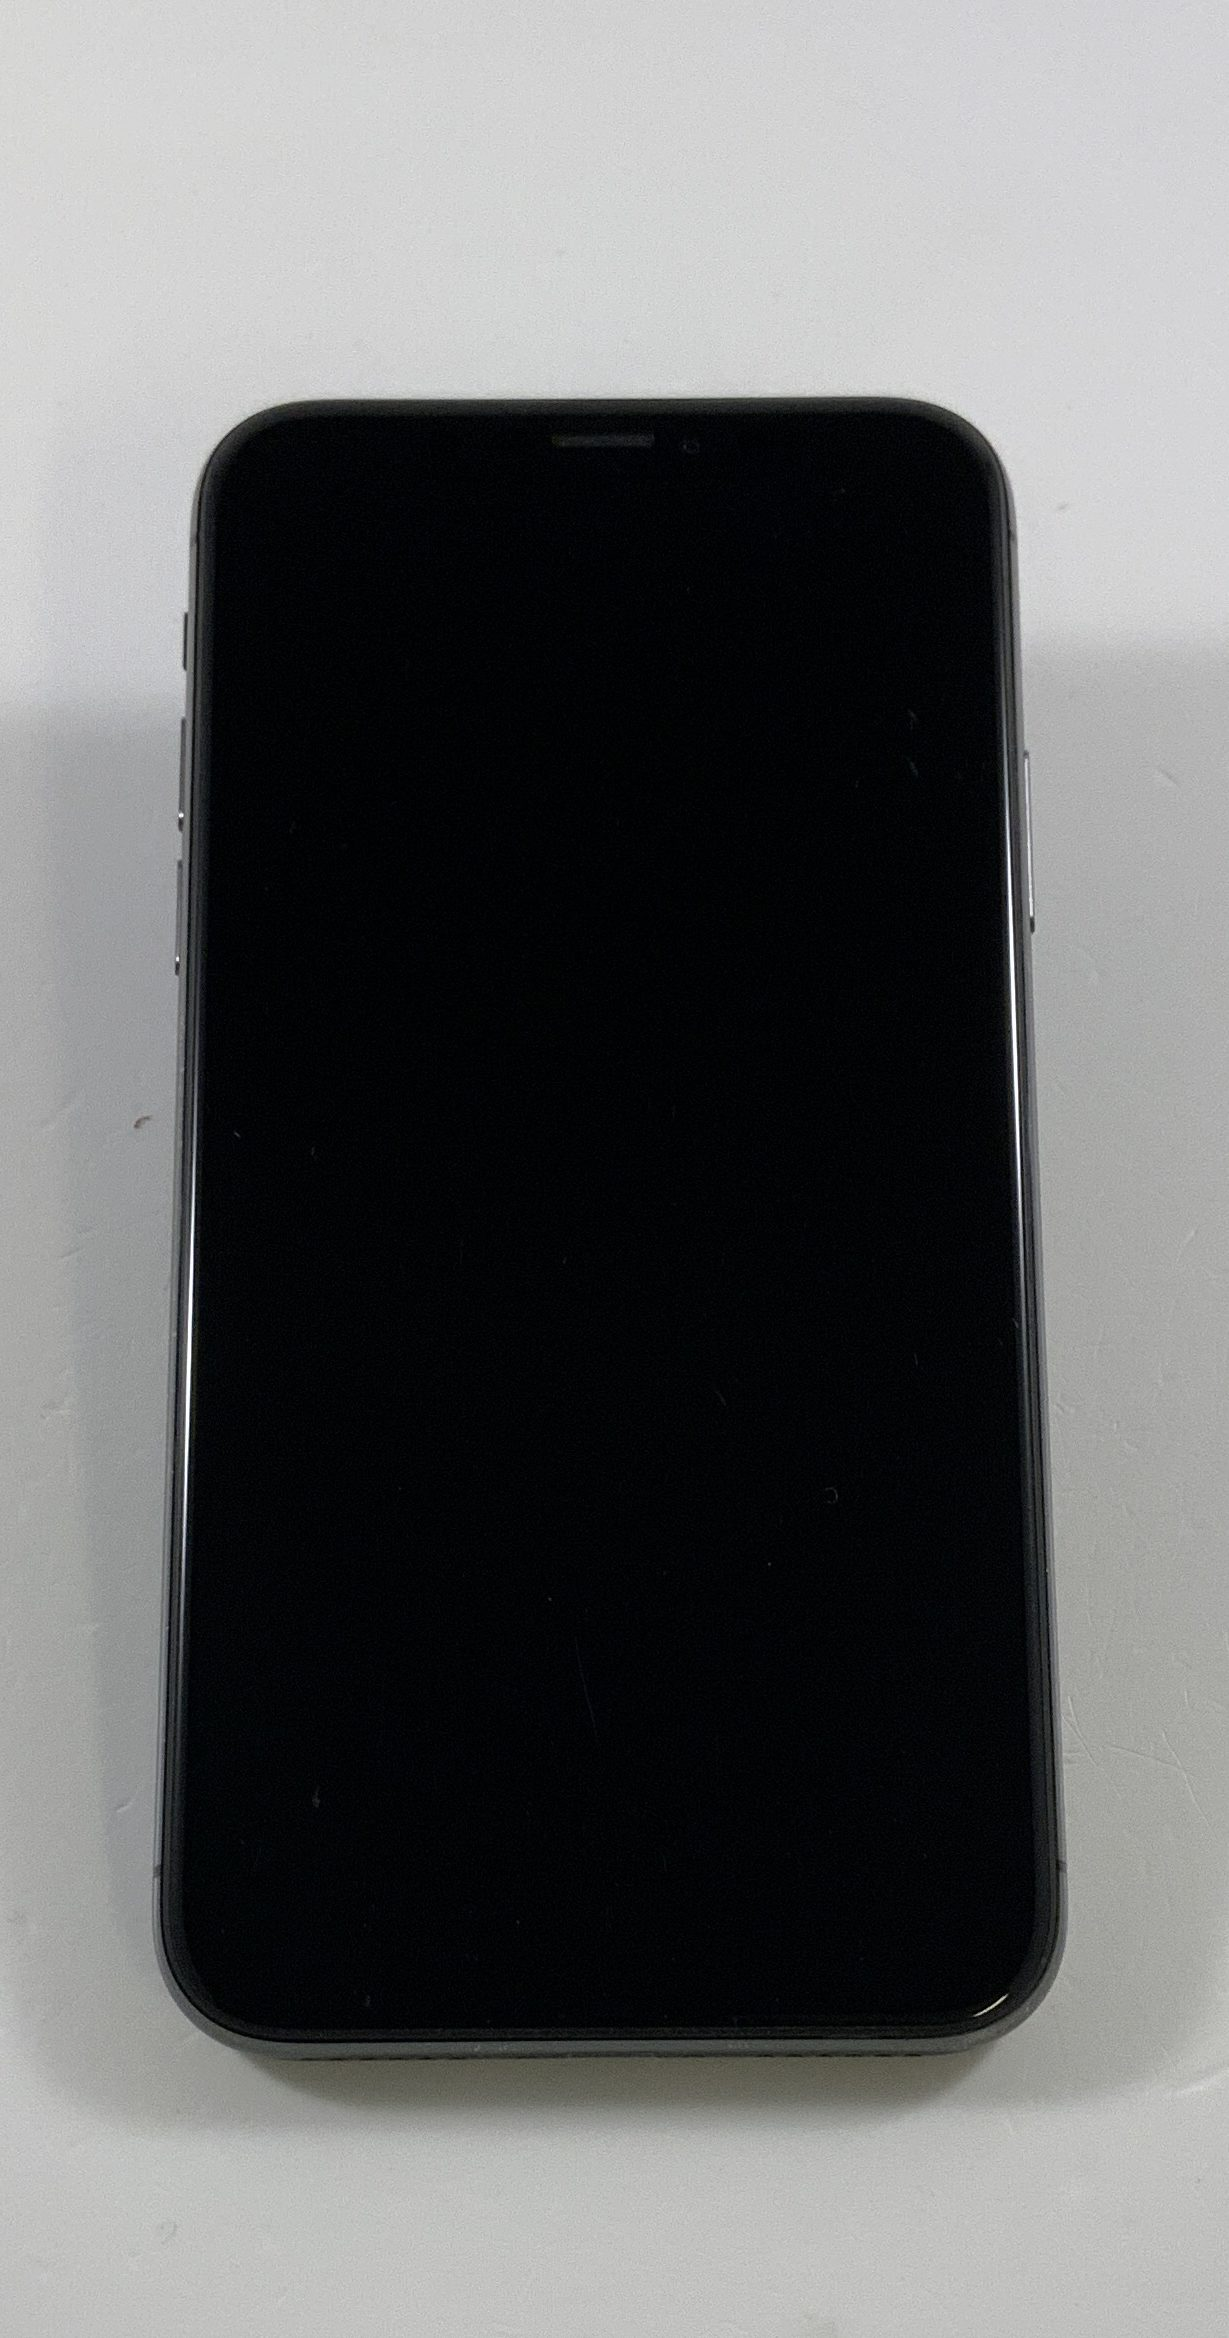 iPhone X 256GB, 256GB, Space Gray, Afbeelding 1